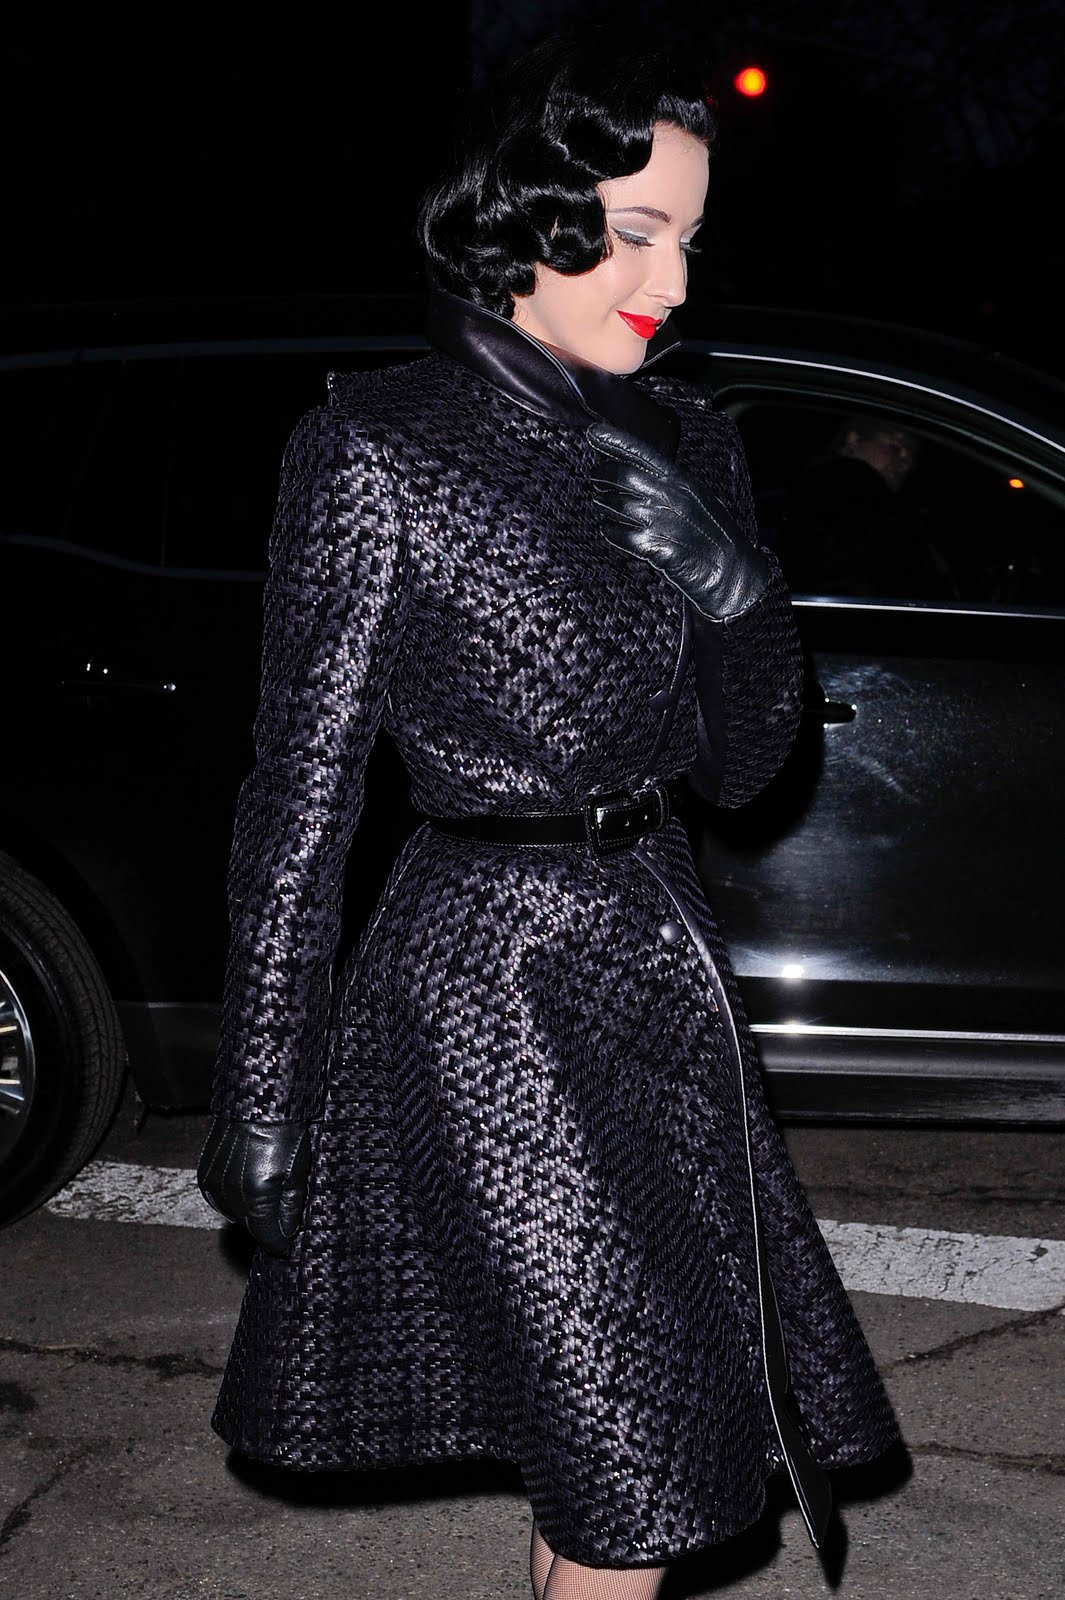 Leather Leather Leather Blog: Dita Von Teese (UHQ) - Red ...